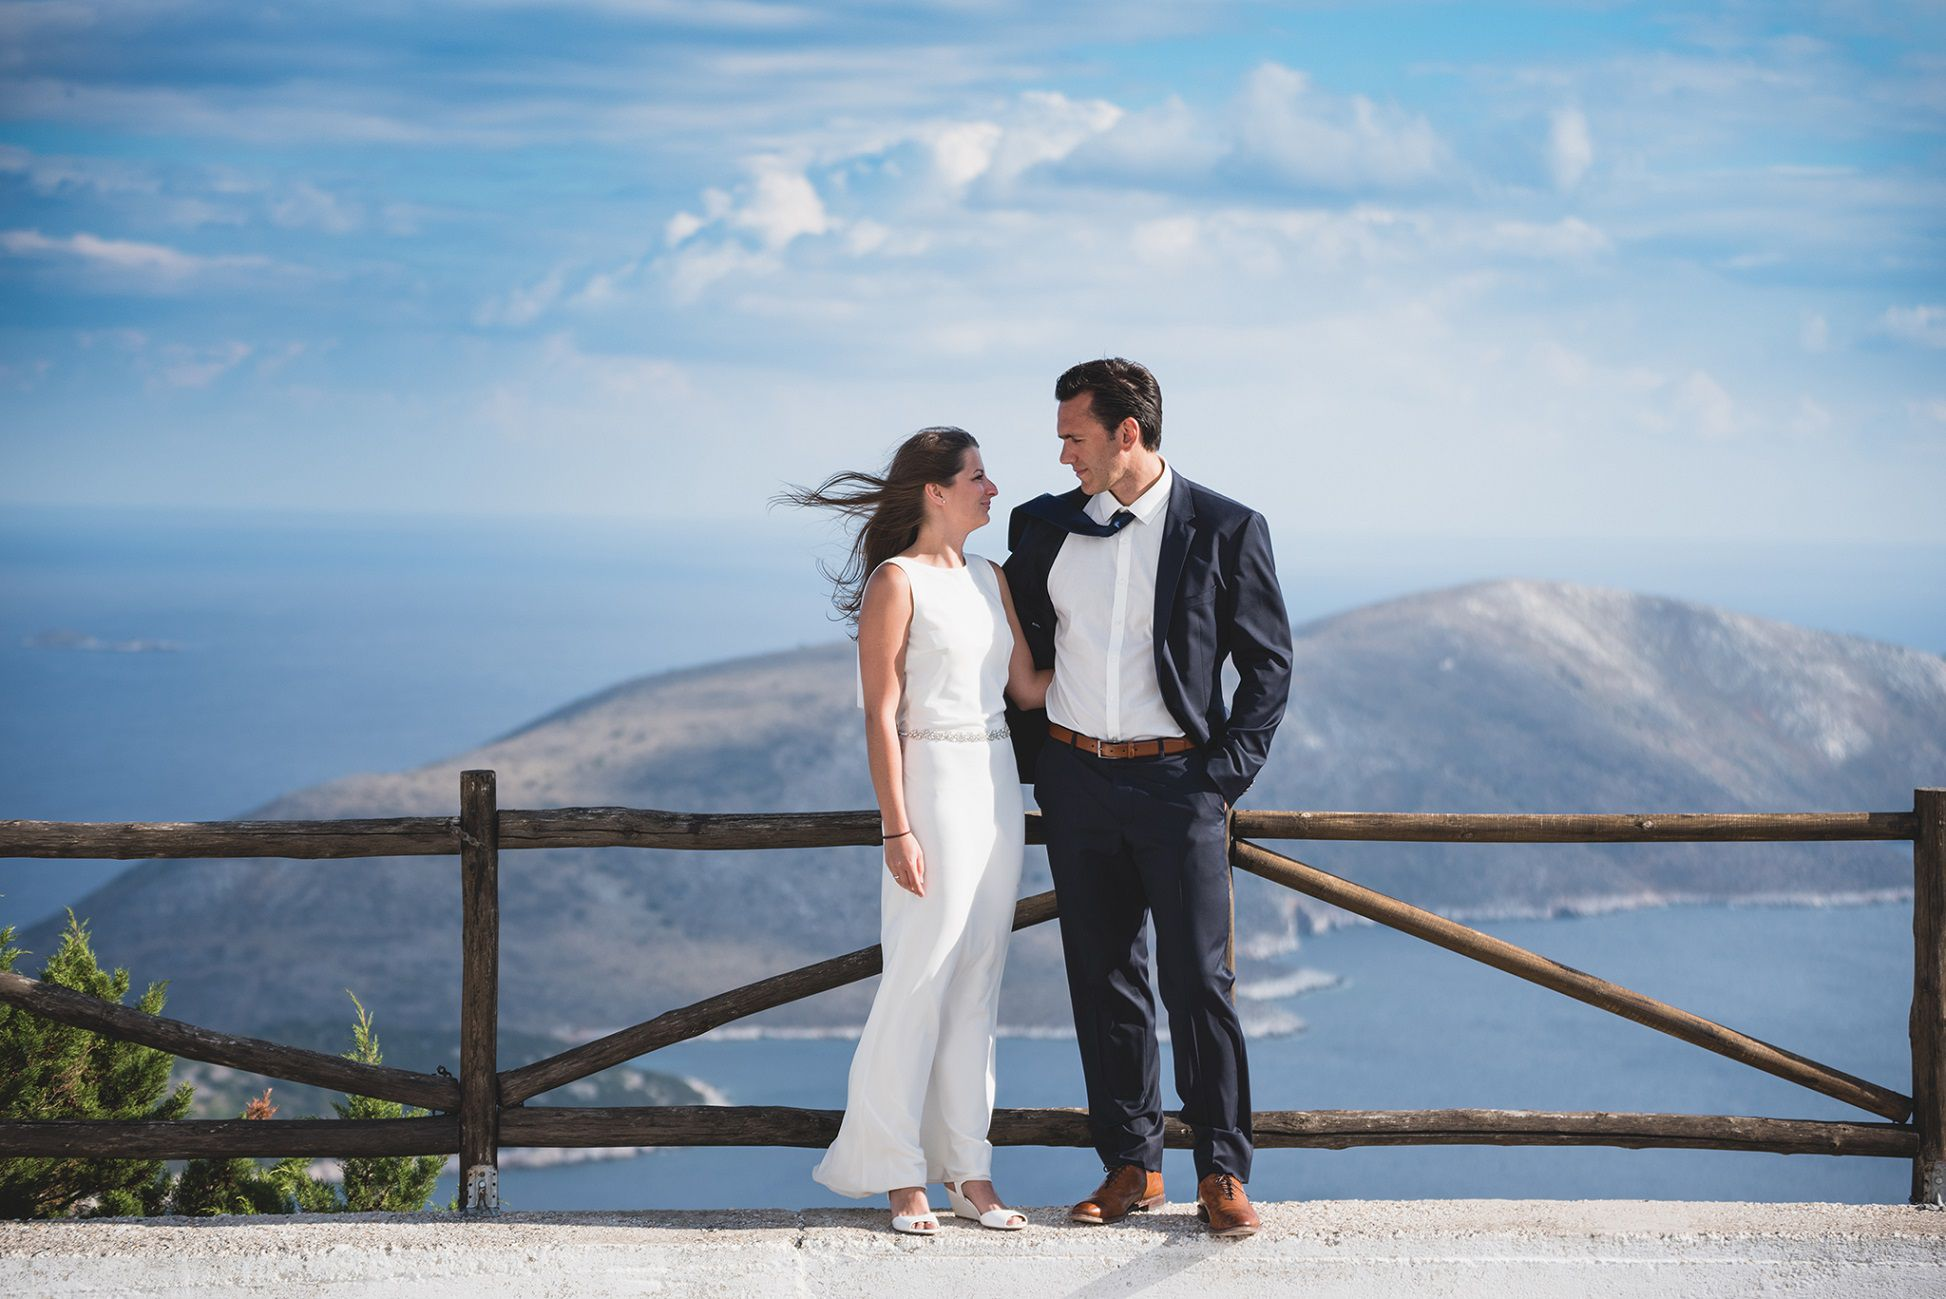 weddingskyros nikolasfanos destinationweddings skyros weddings in greece